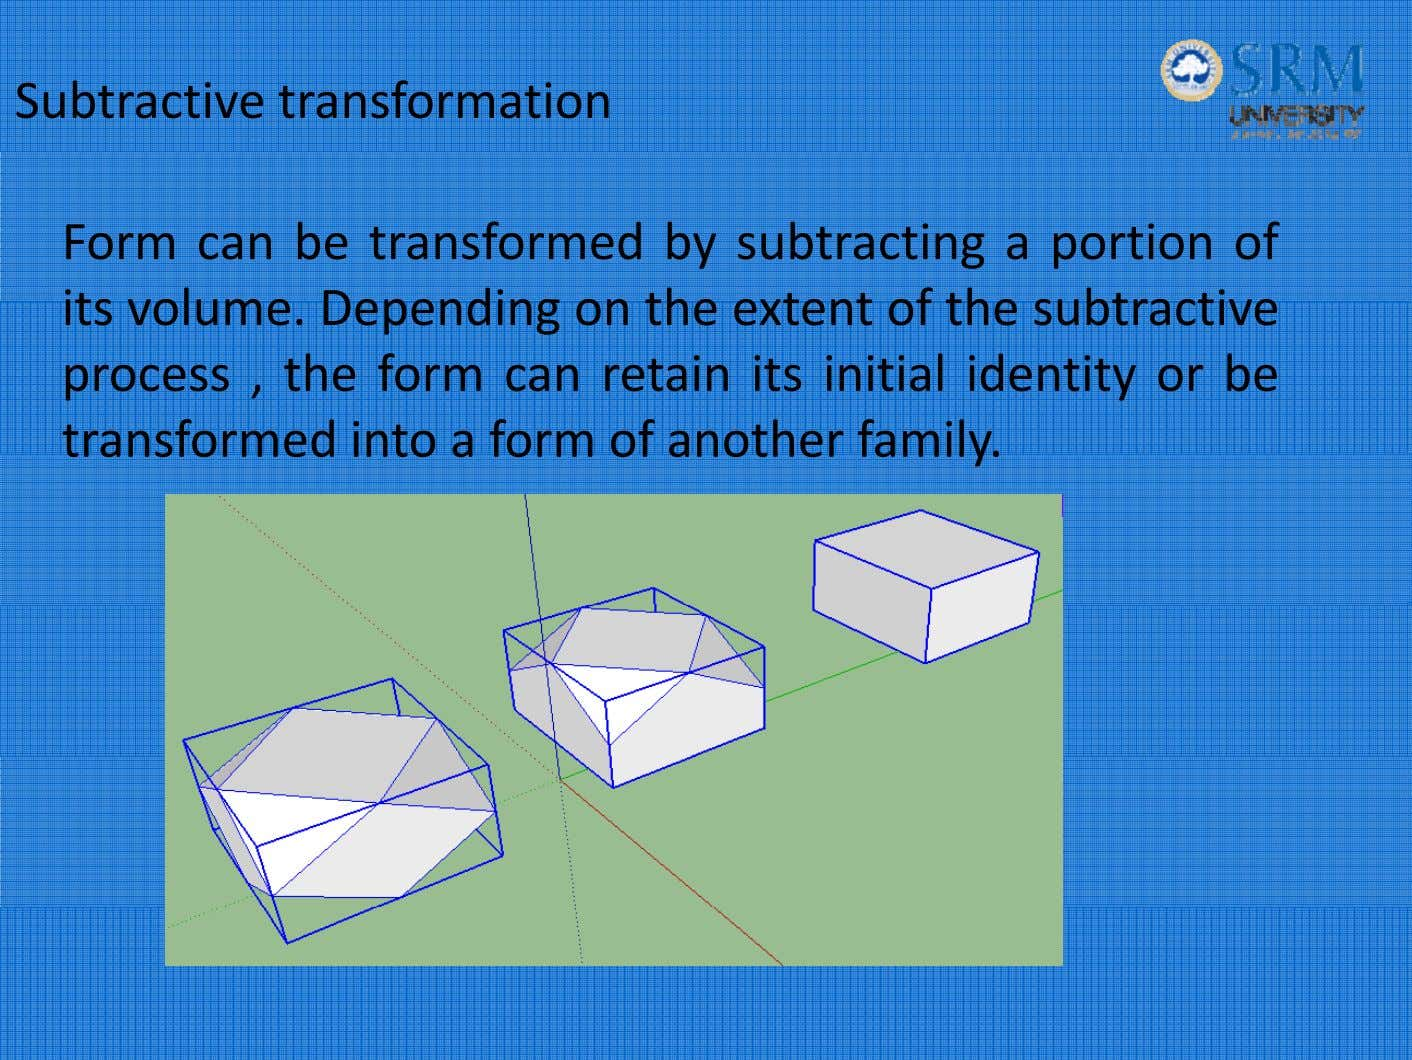 Subtractive transformation Form can be transformed by subtracting a portion of its volume. Depending on